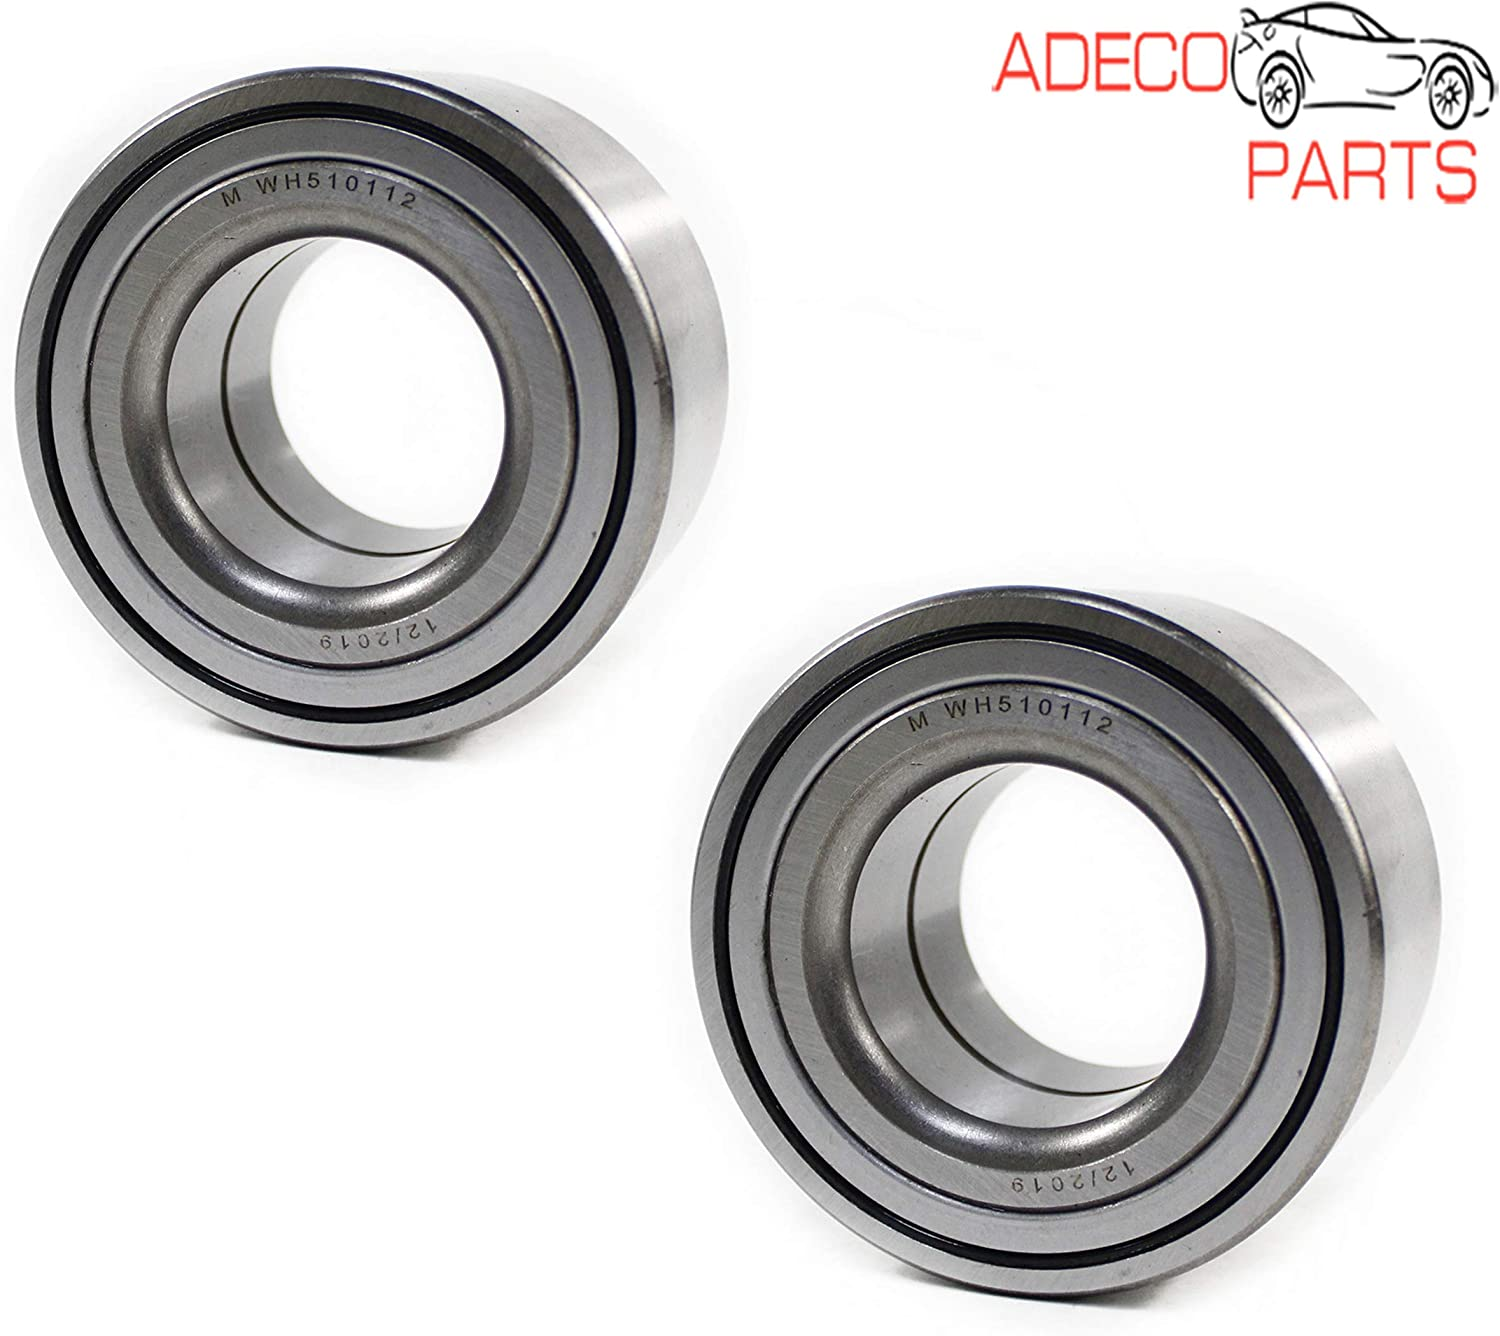 AdecoAutoParts/© Two 510112 Front Wheel Bearing for Nissan Micra Versa Note Fiat 500 500x 051-4283